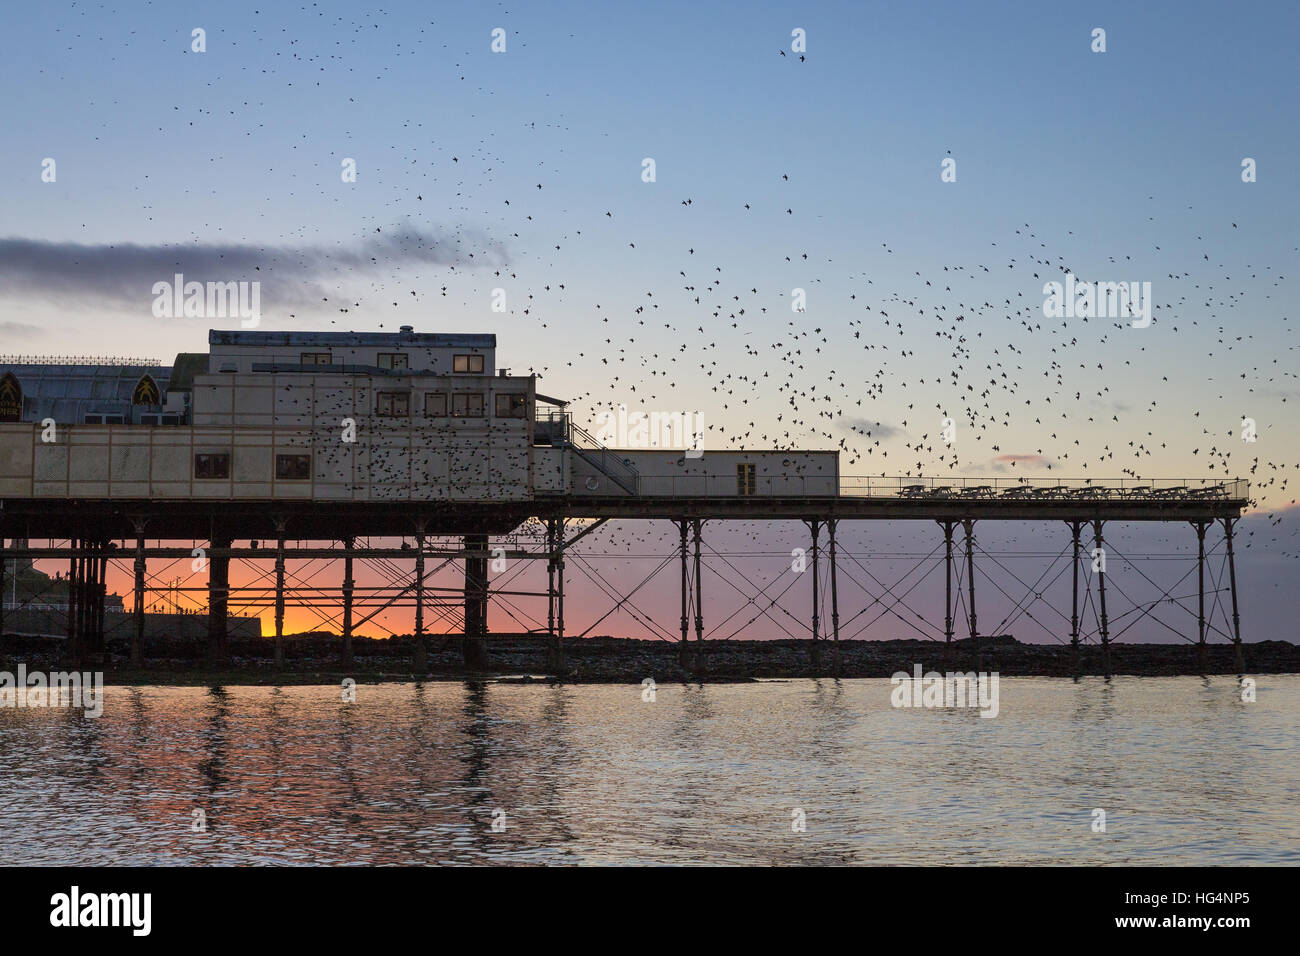 Thousands of Starlings (Sturnus vulgaris) coming in to roost on the pier in Aberystwyth, Ceredigion, Wales, UK Stock Photo